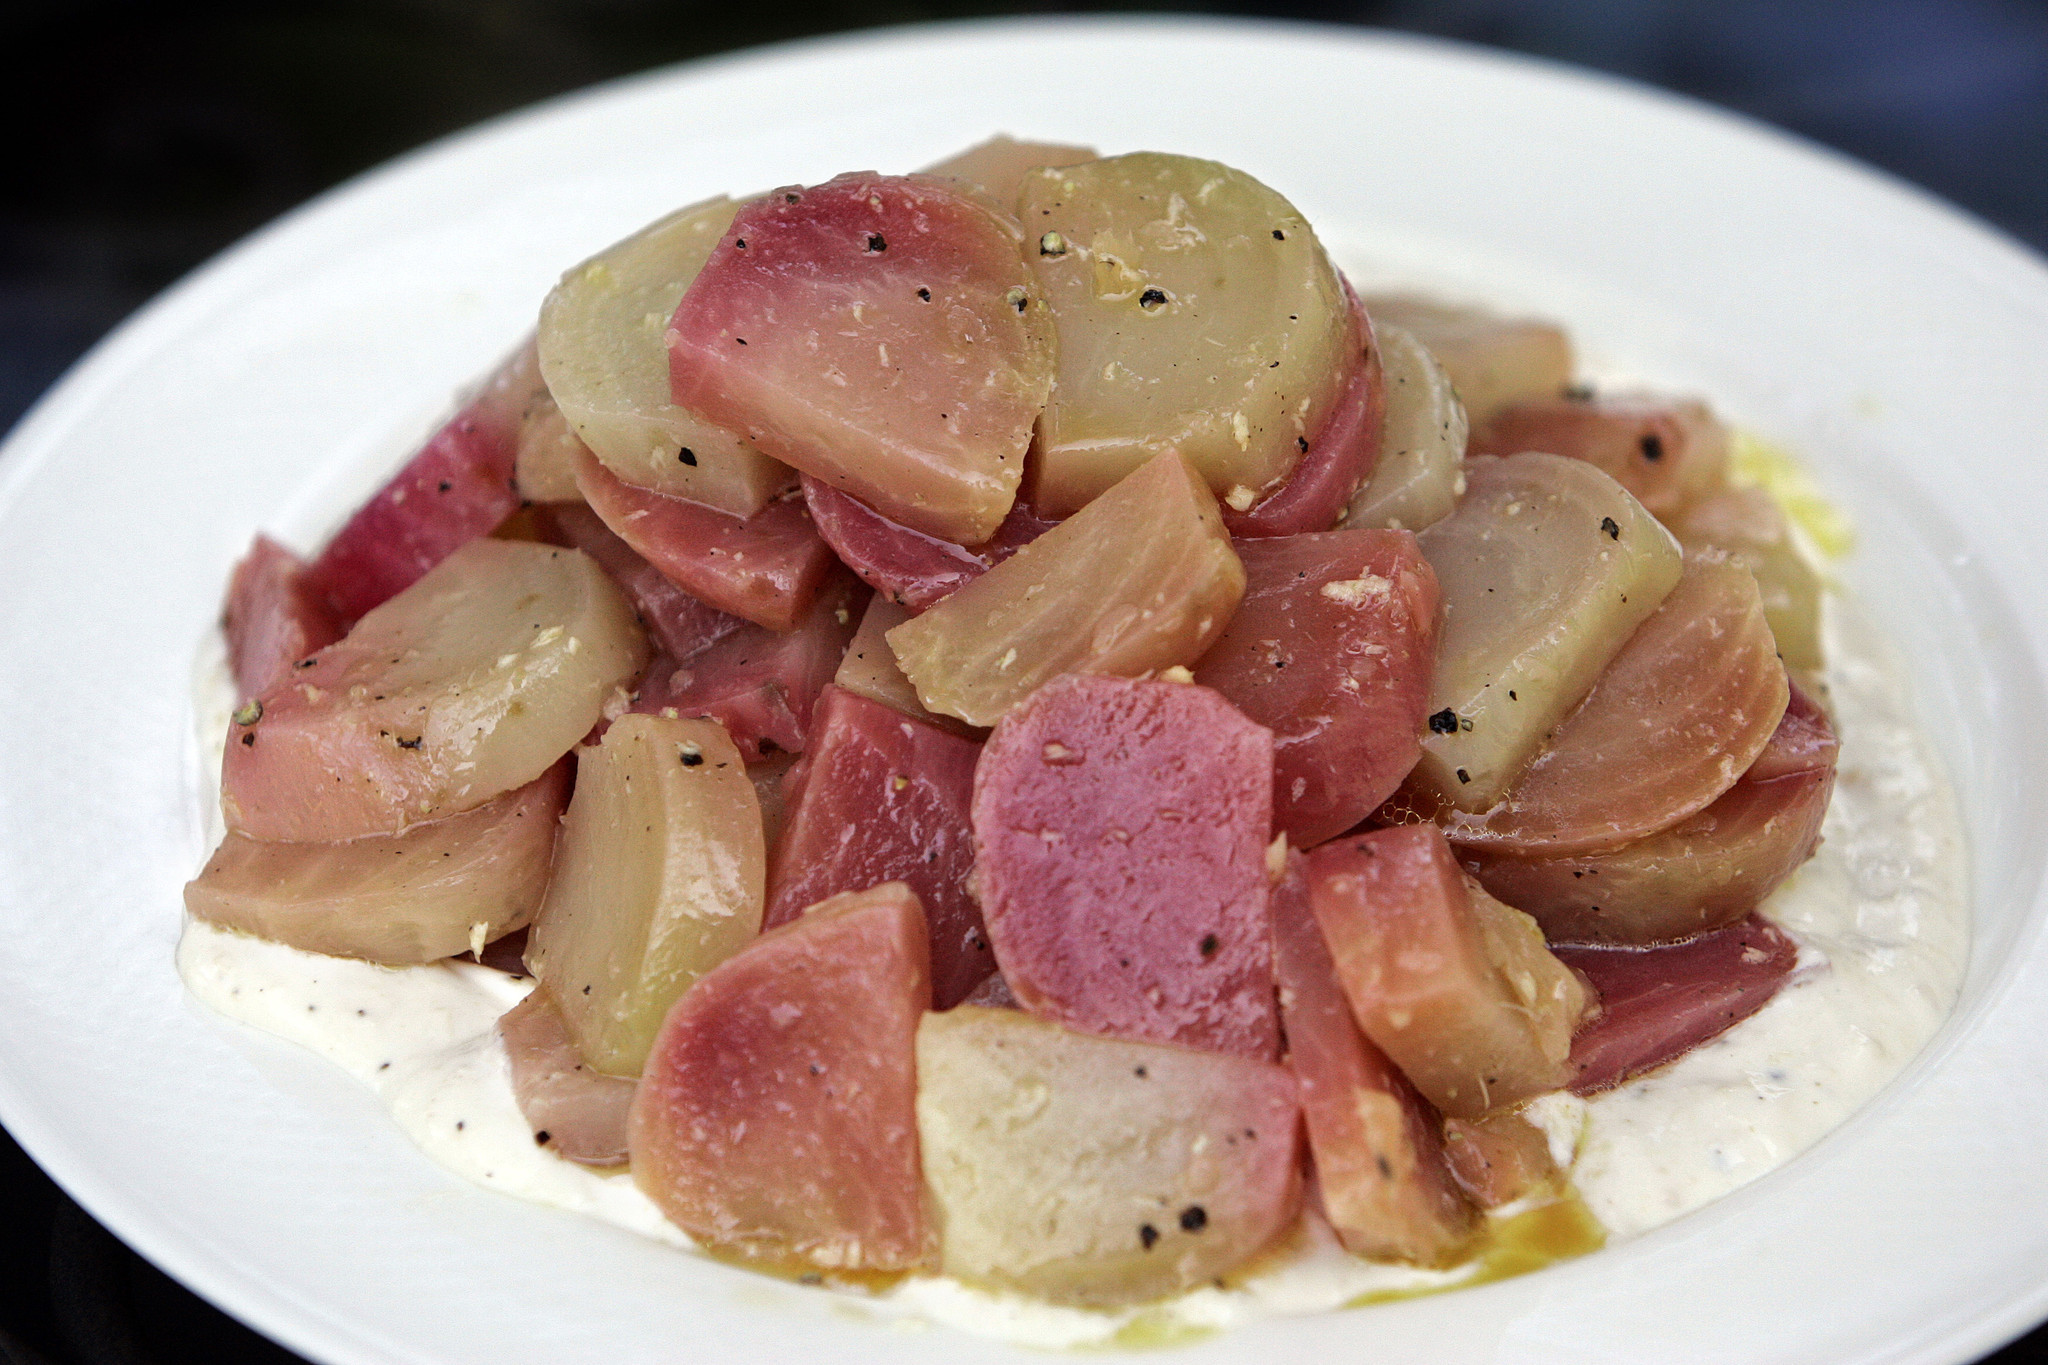 Photos: 97 great Thanksgiving recipes - A different take on beets